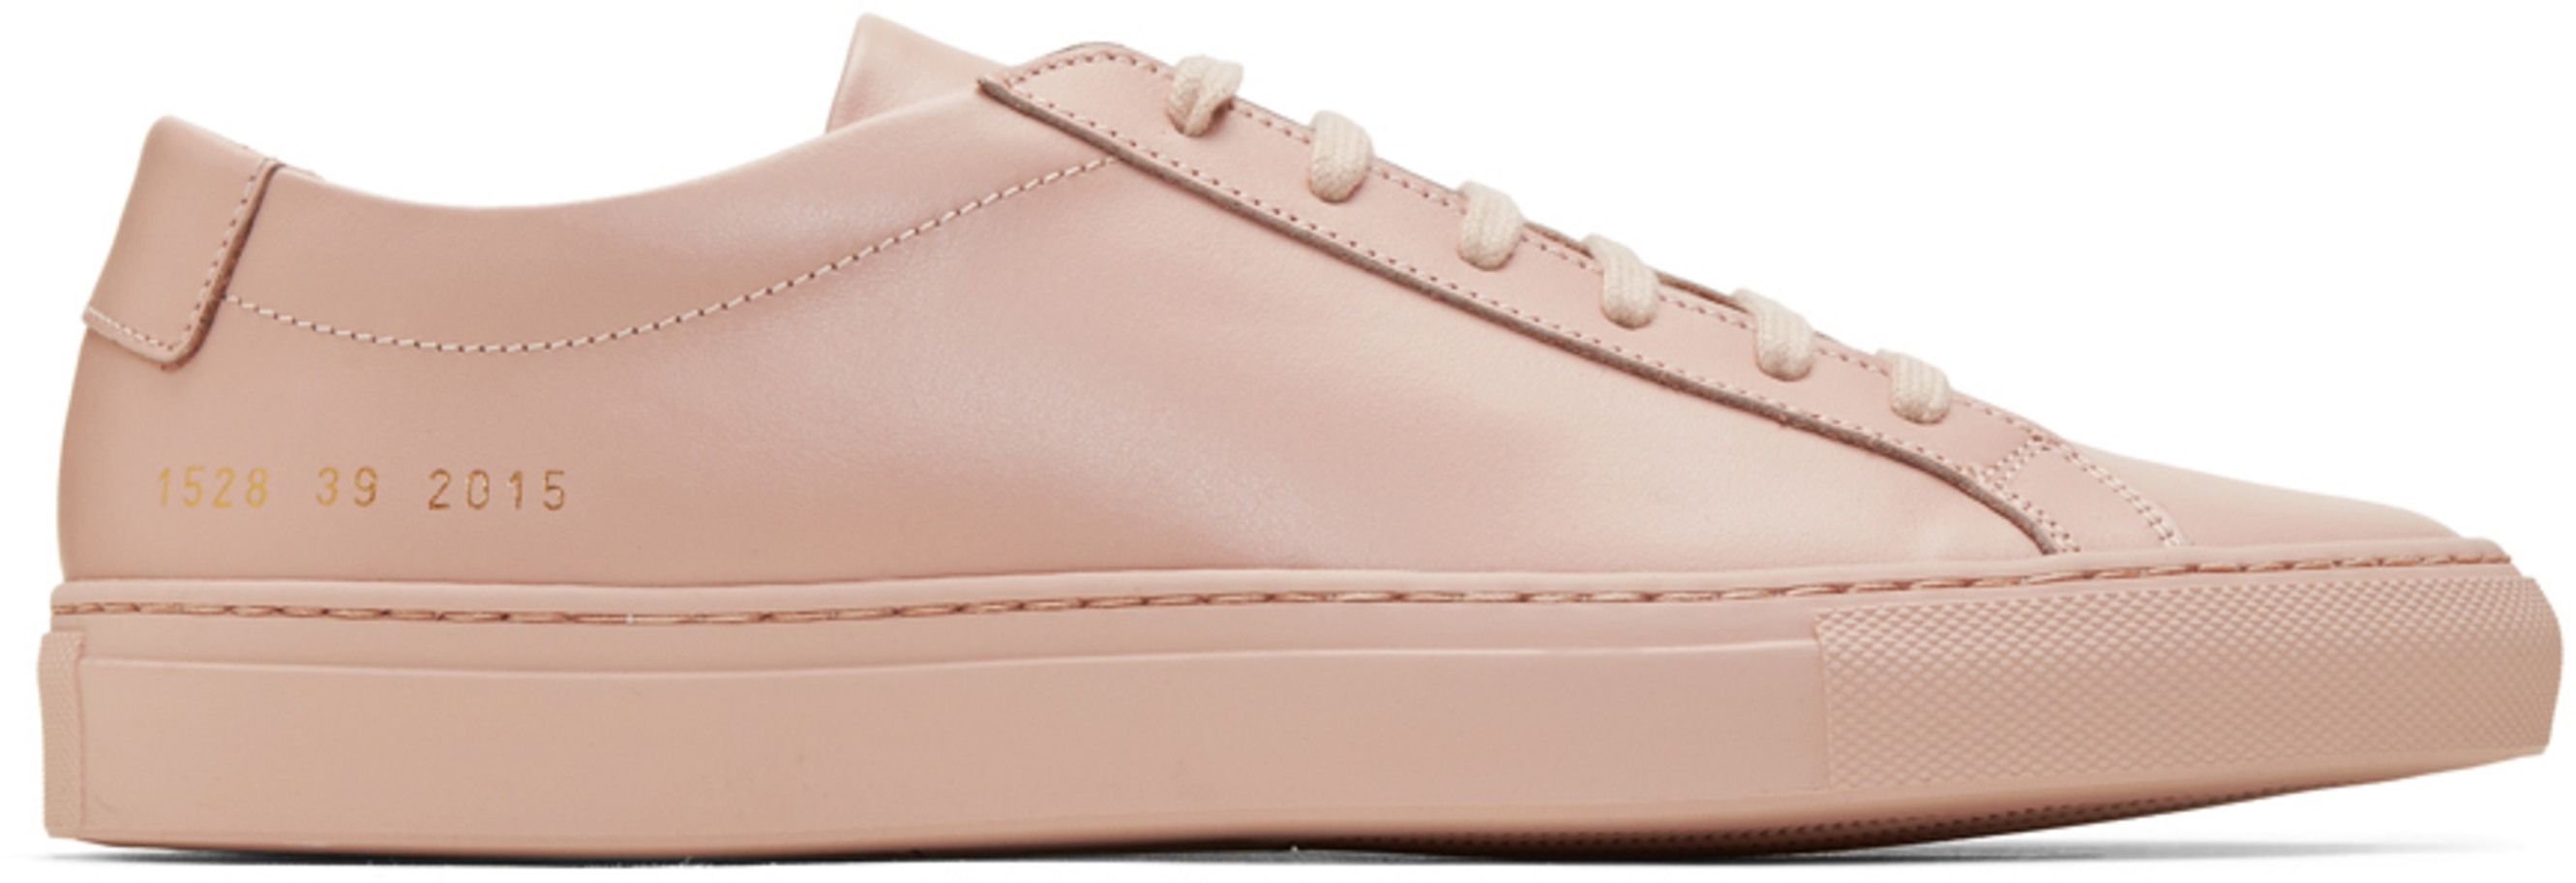 2235fc92372f Common Projects for Men SS19 Collection